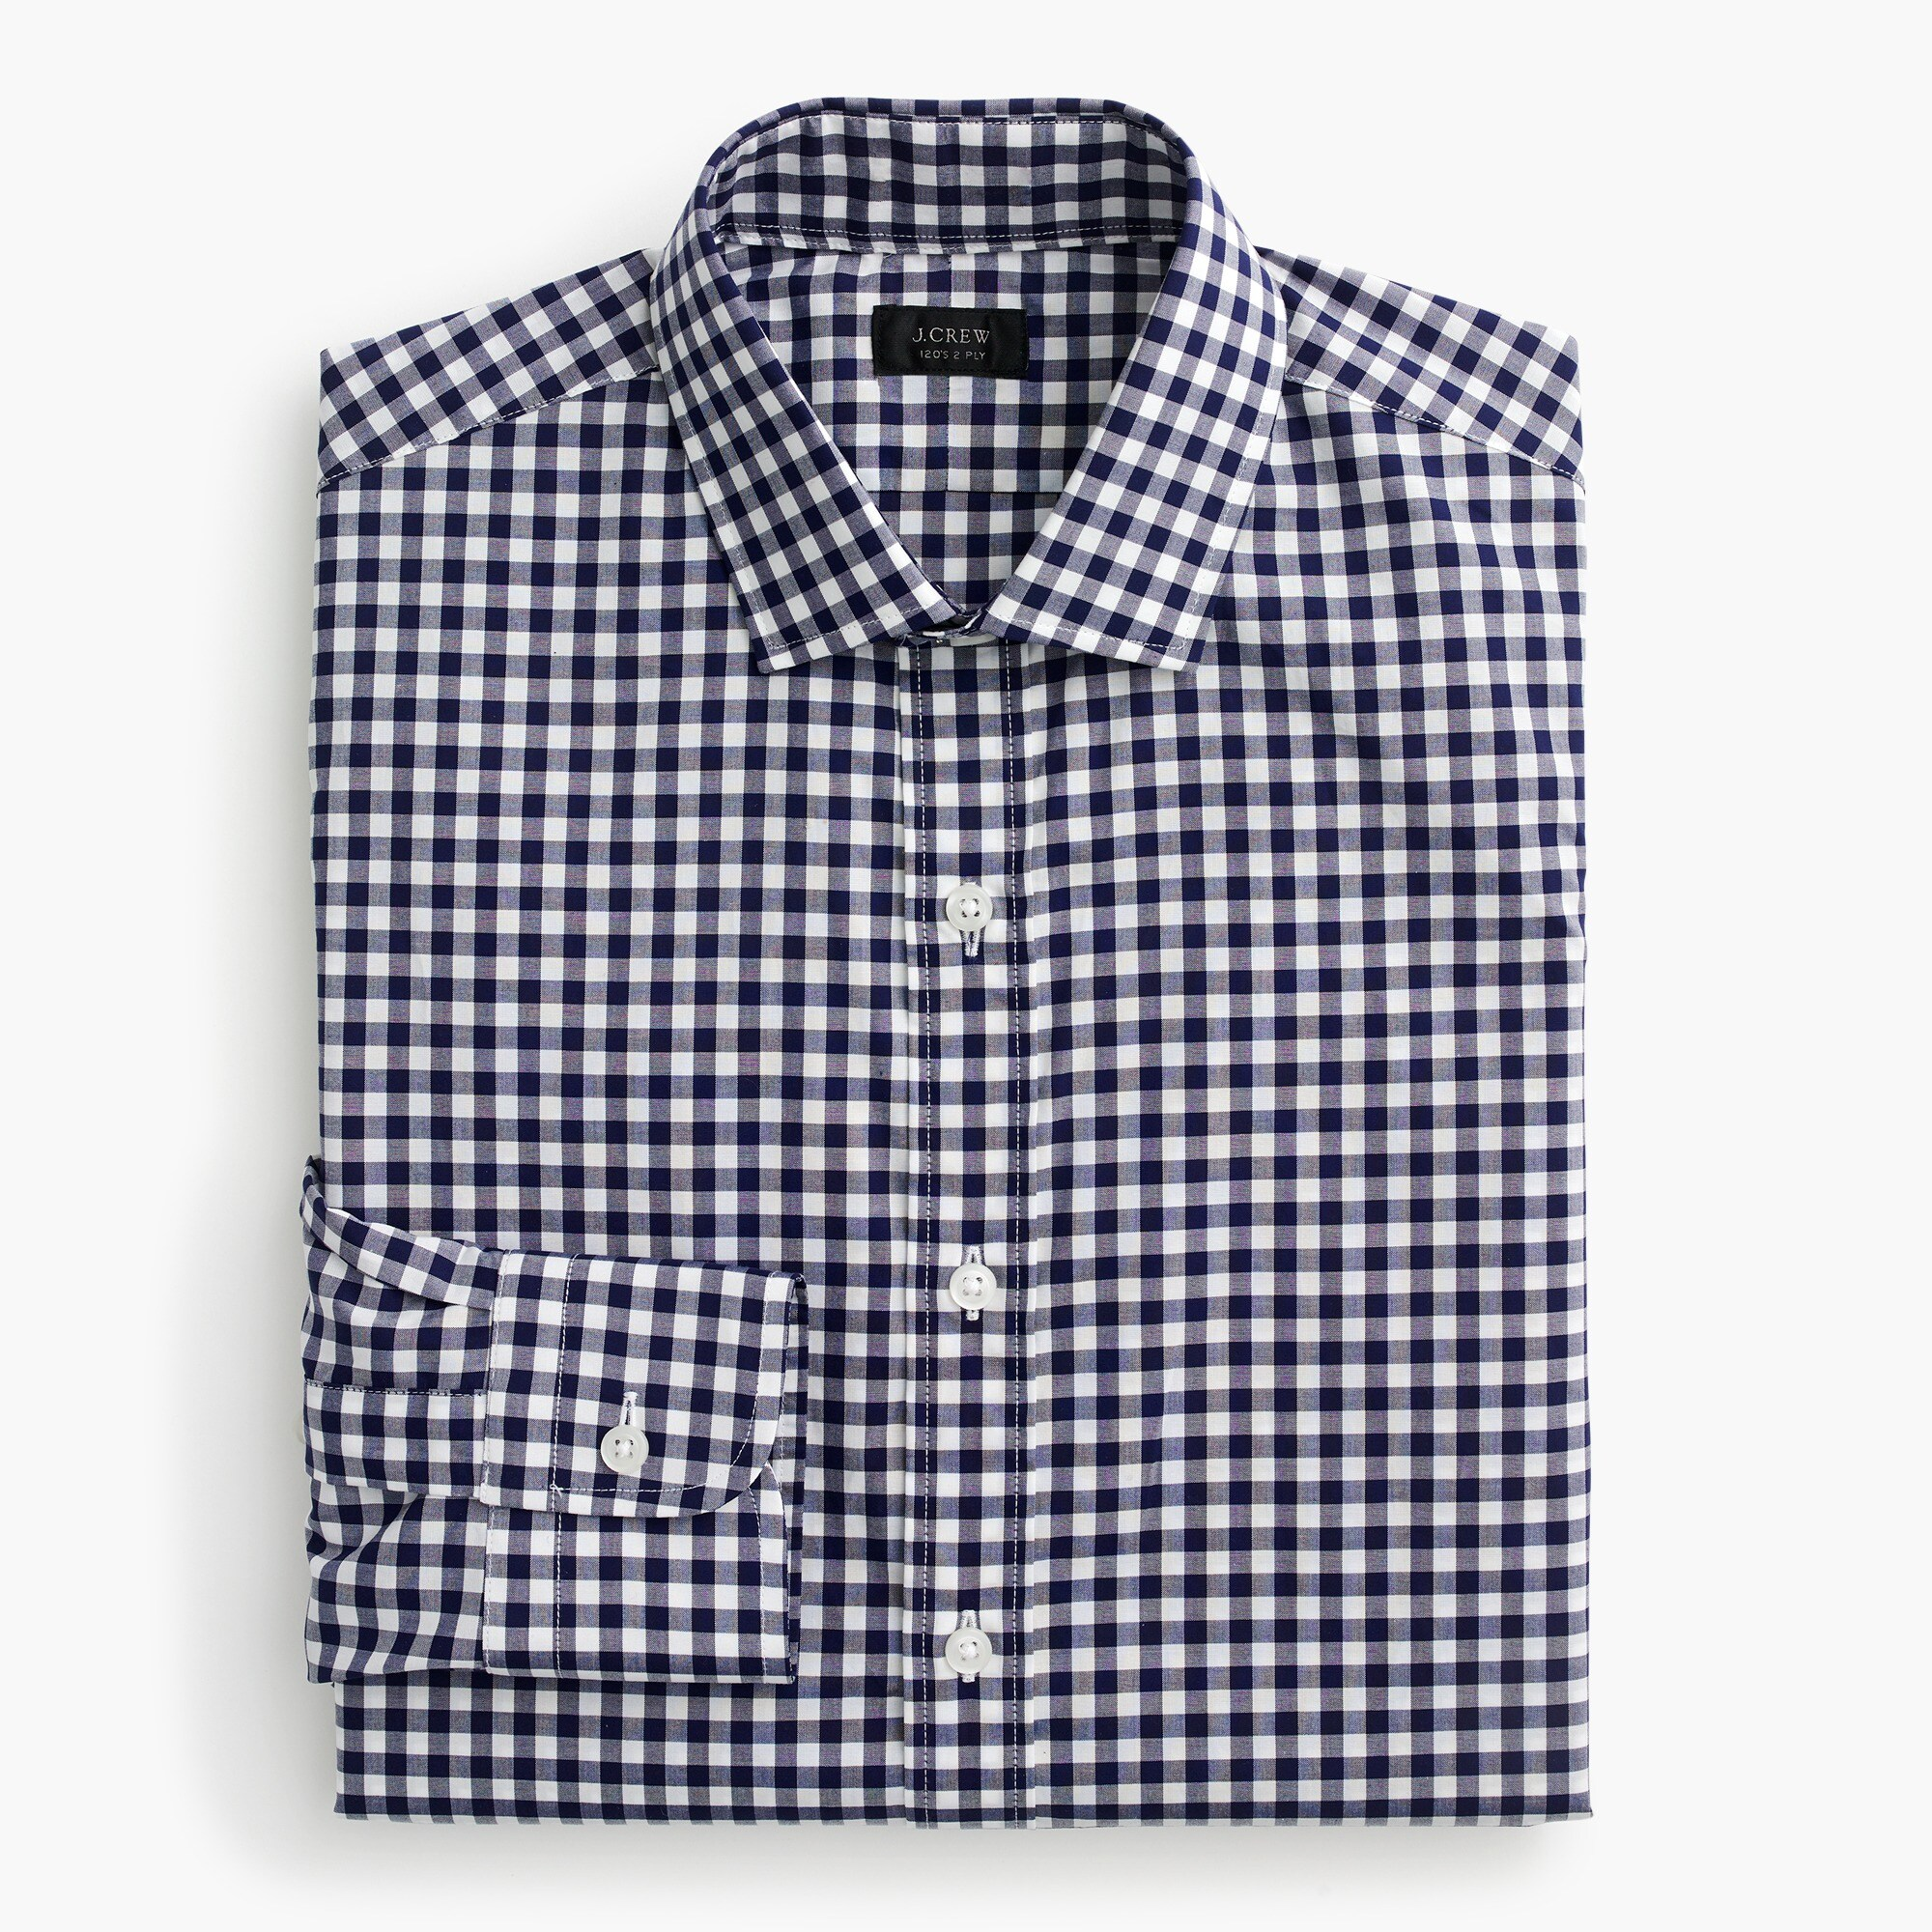 Ludlow Slim-fit spread-collar shirt in navy gingham